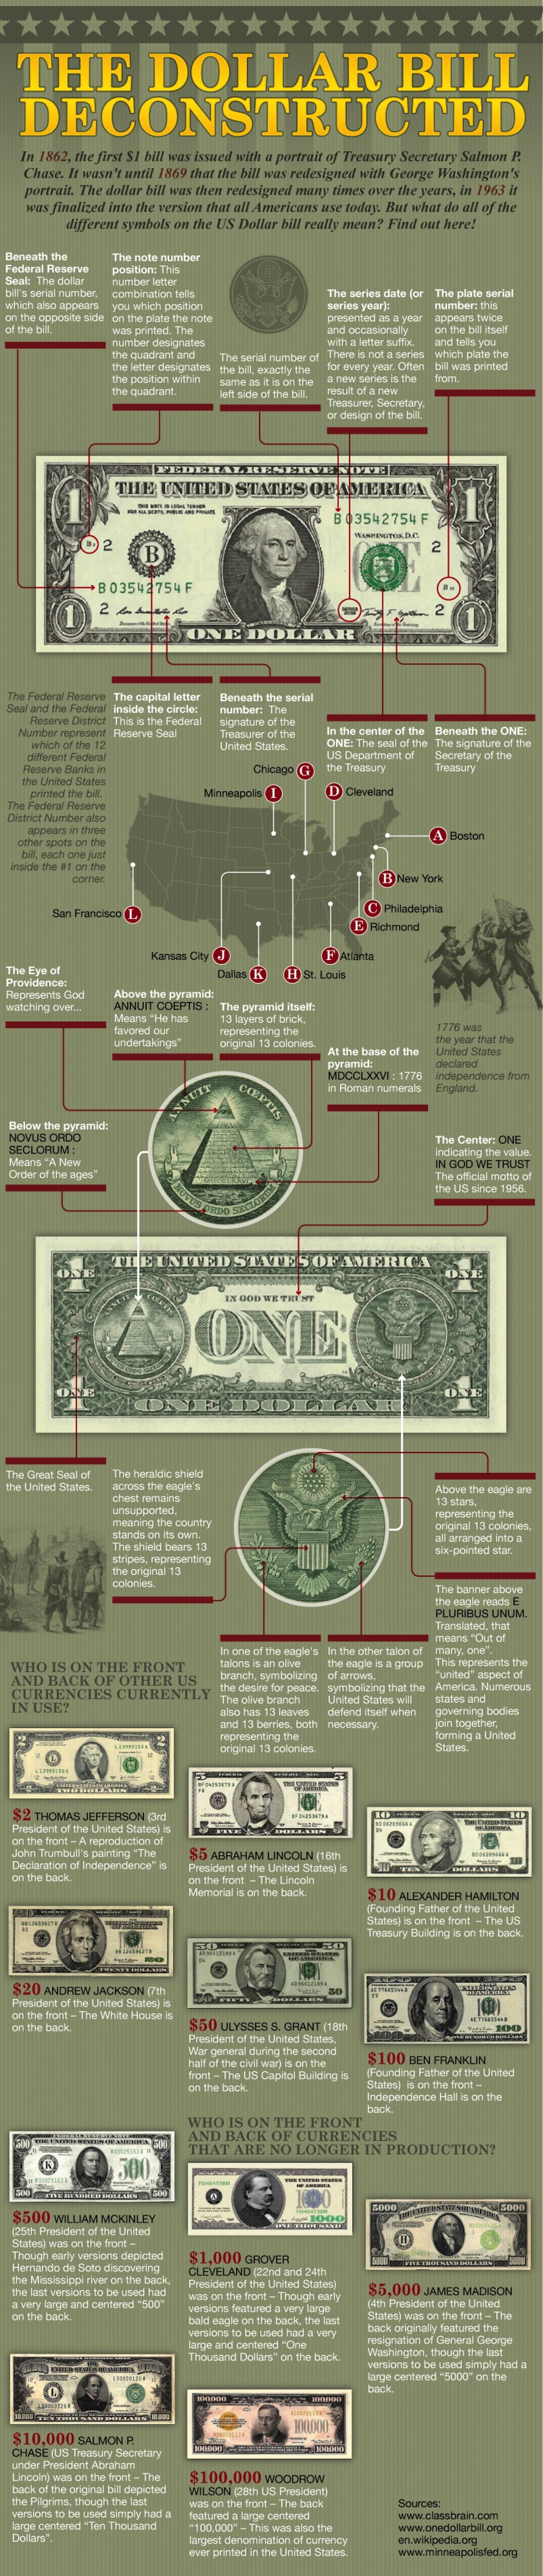 The Dollar Bill Reconstructed